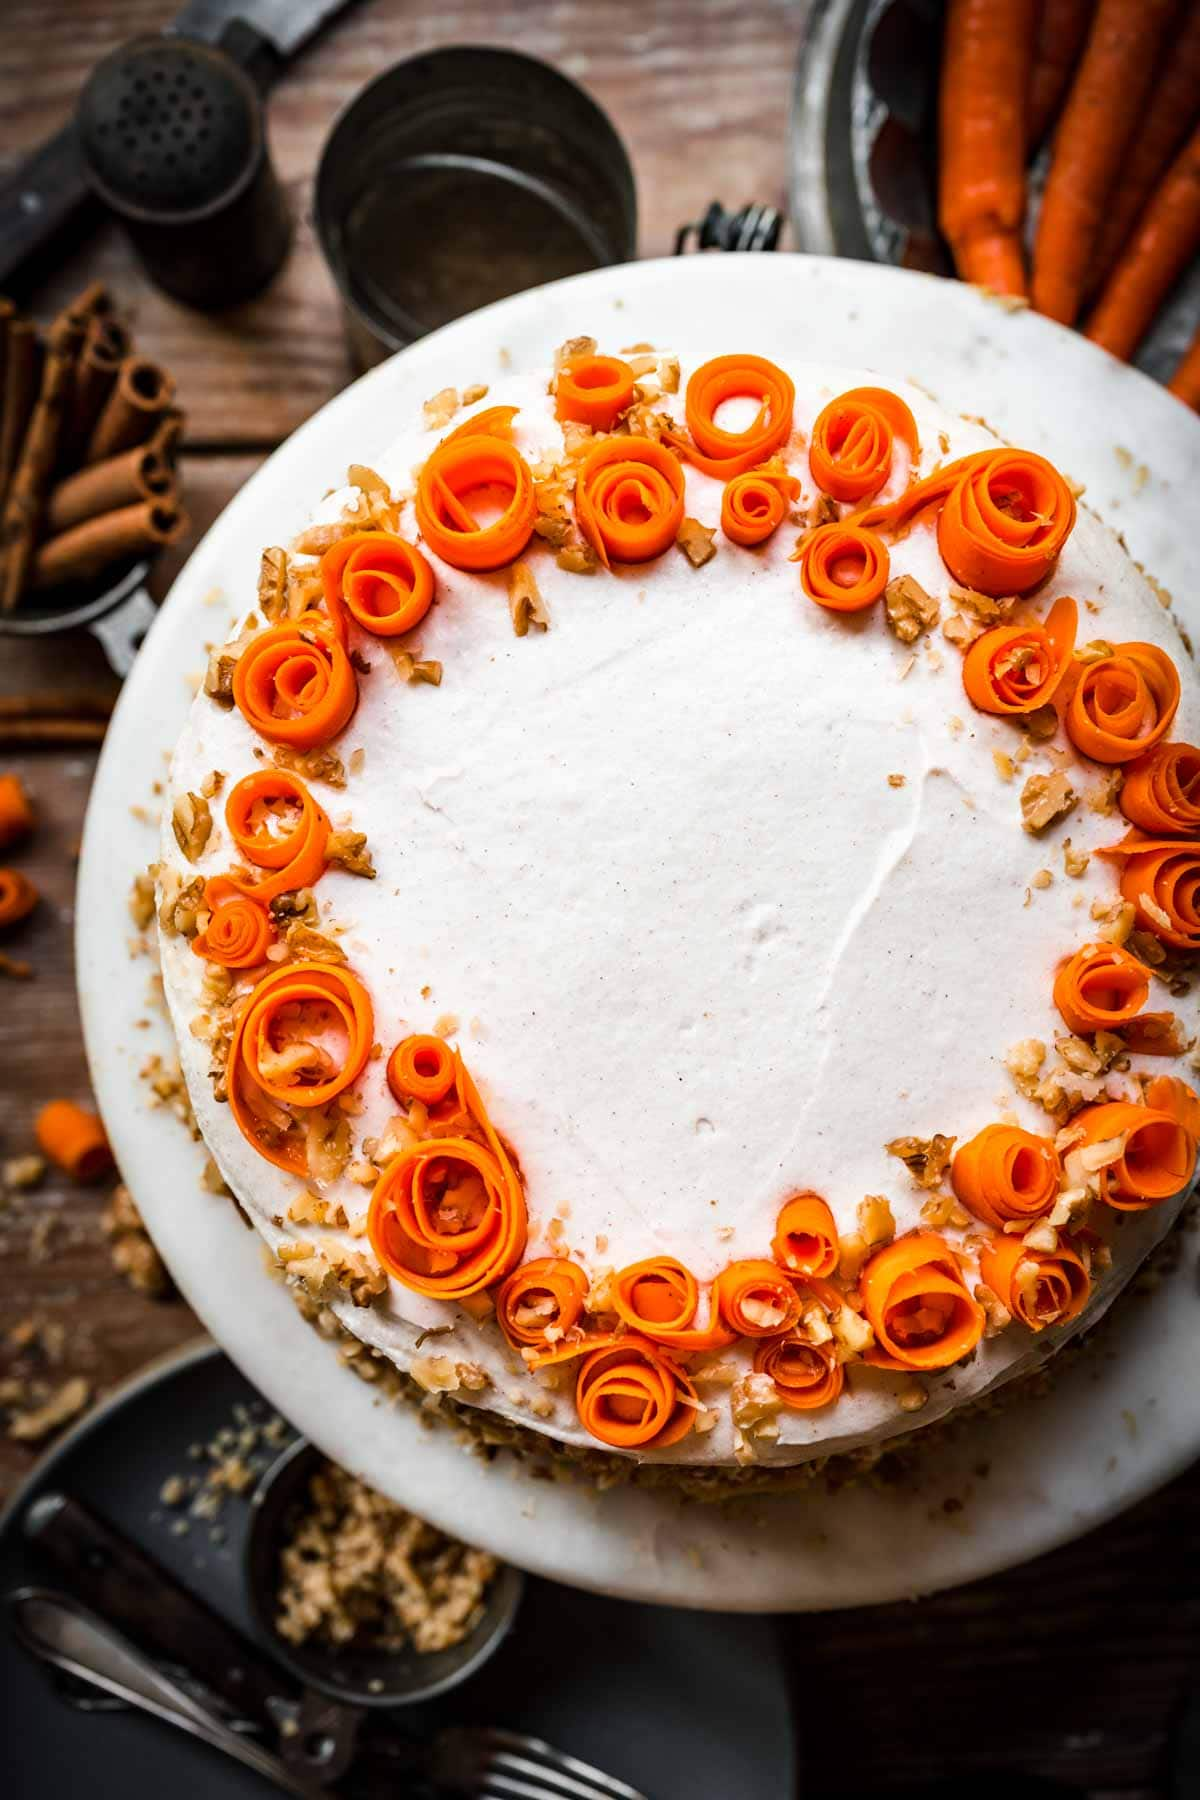 Overhead view of carrot cake on a cake stand.